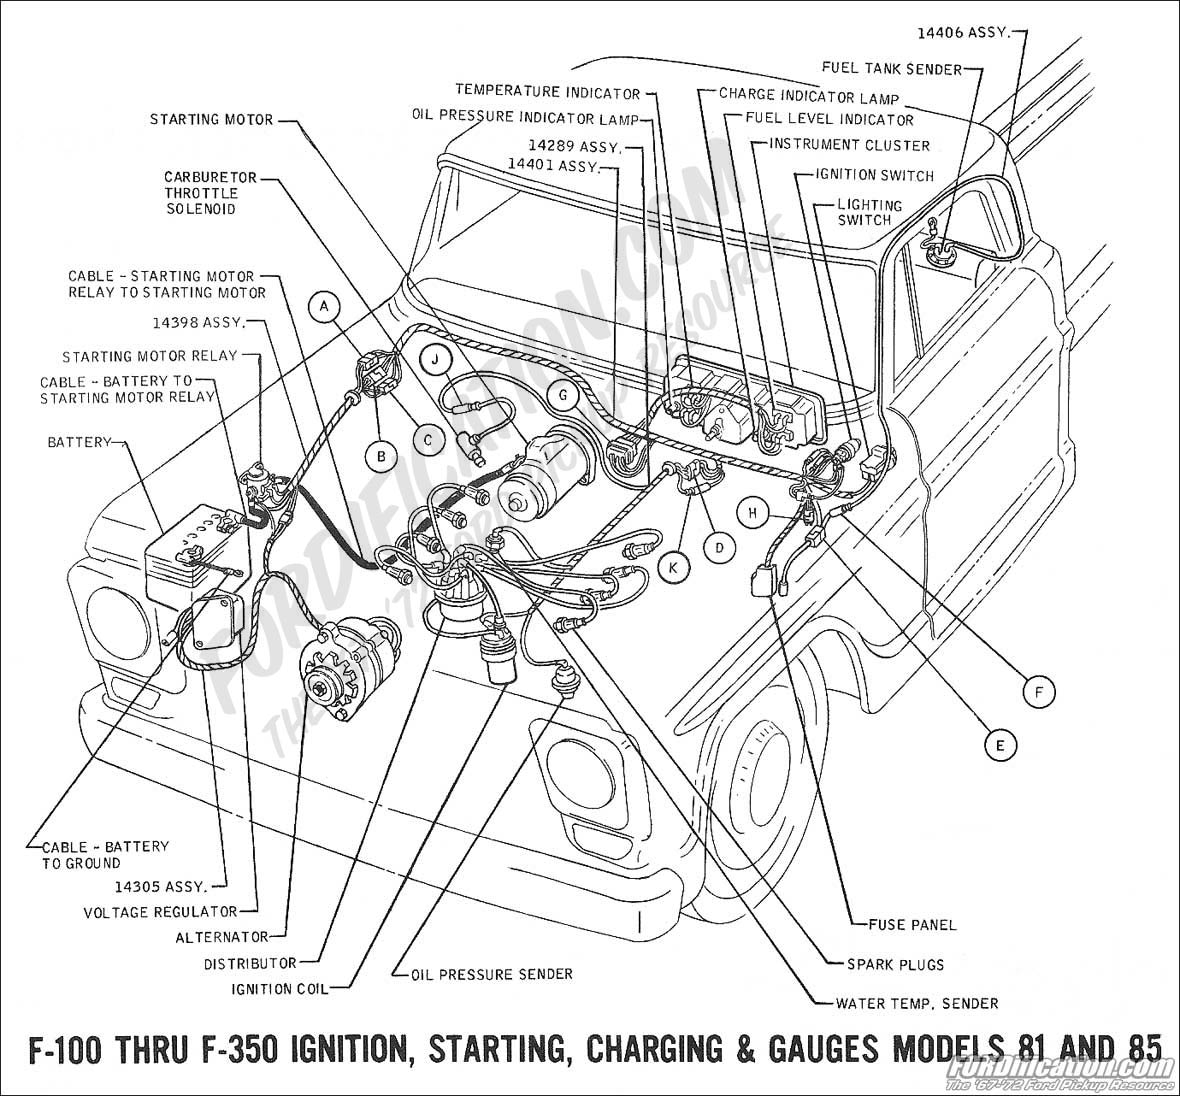 1968 Ford F 250 Starter Wiring Diagram Just Another Harness Together With Turn Signal Dist Simple Diagrams Rh 8 Zahnaerztin Carstens De Dodge Magnum 2001 Super Duty